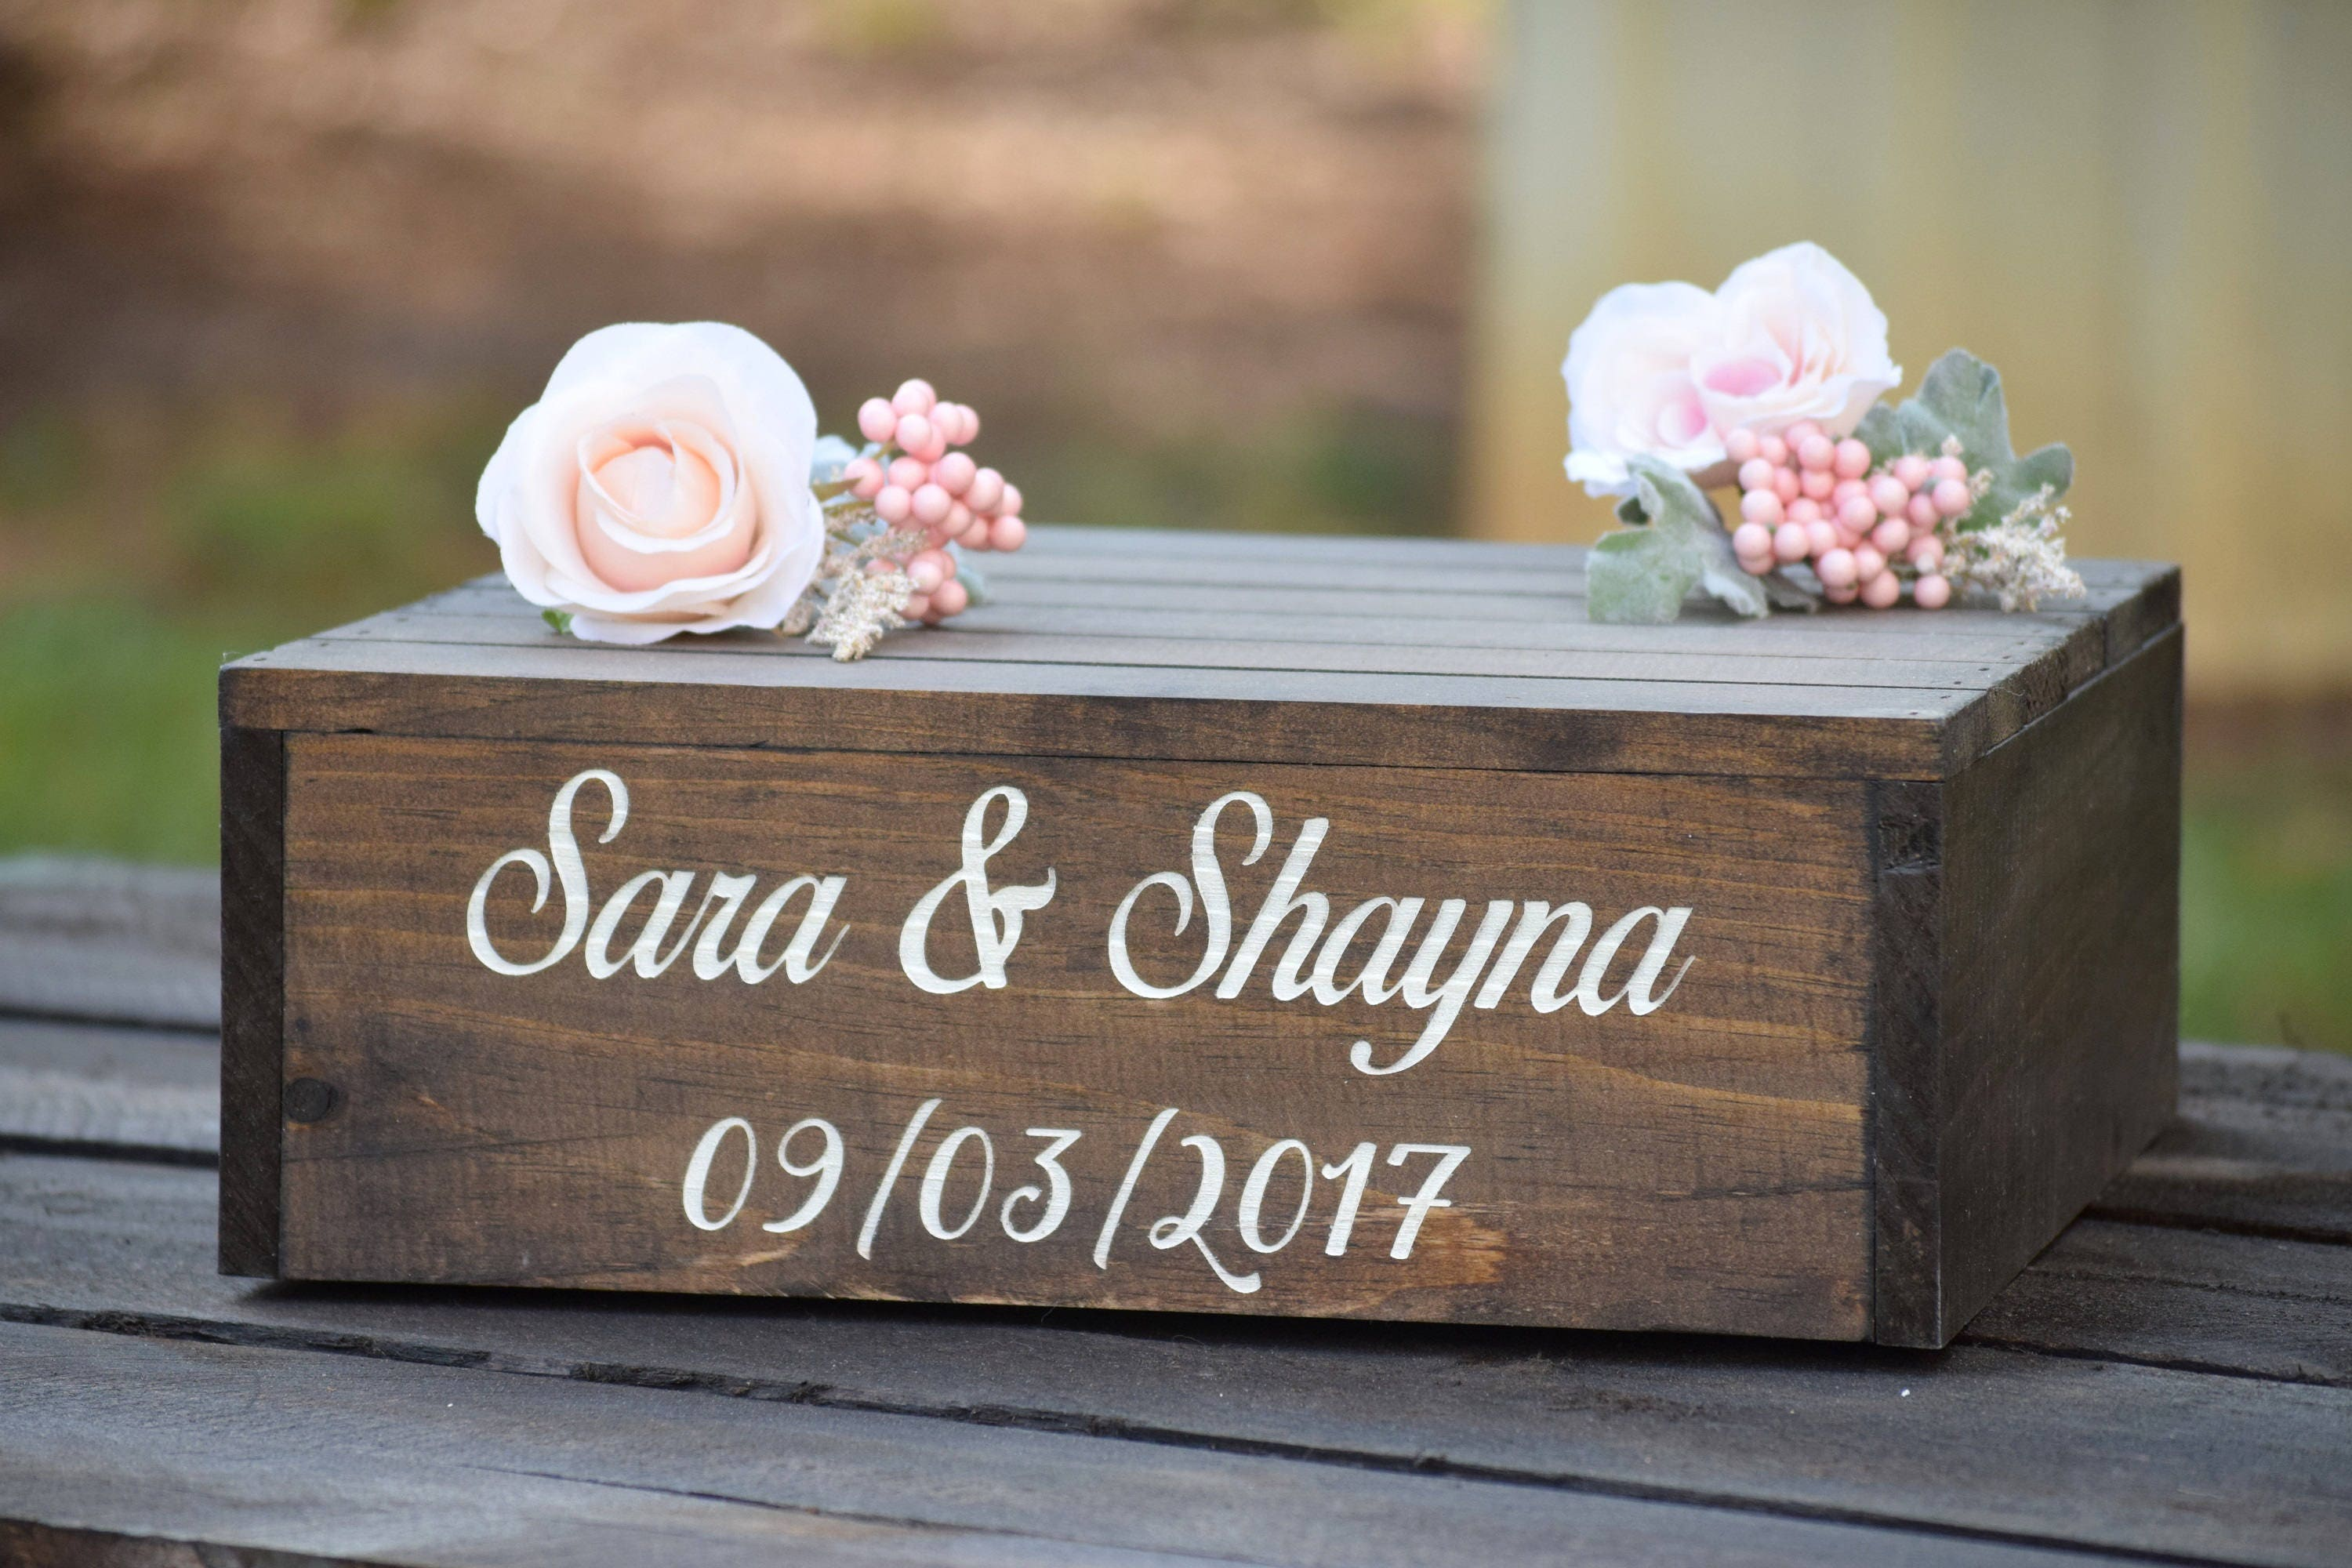 Rustic Wedding Wood Cake Stand: Personalized Wooden Cake Stand Engraved Cake Stand Rustic